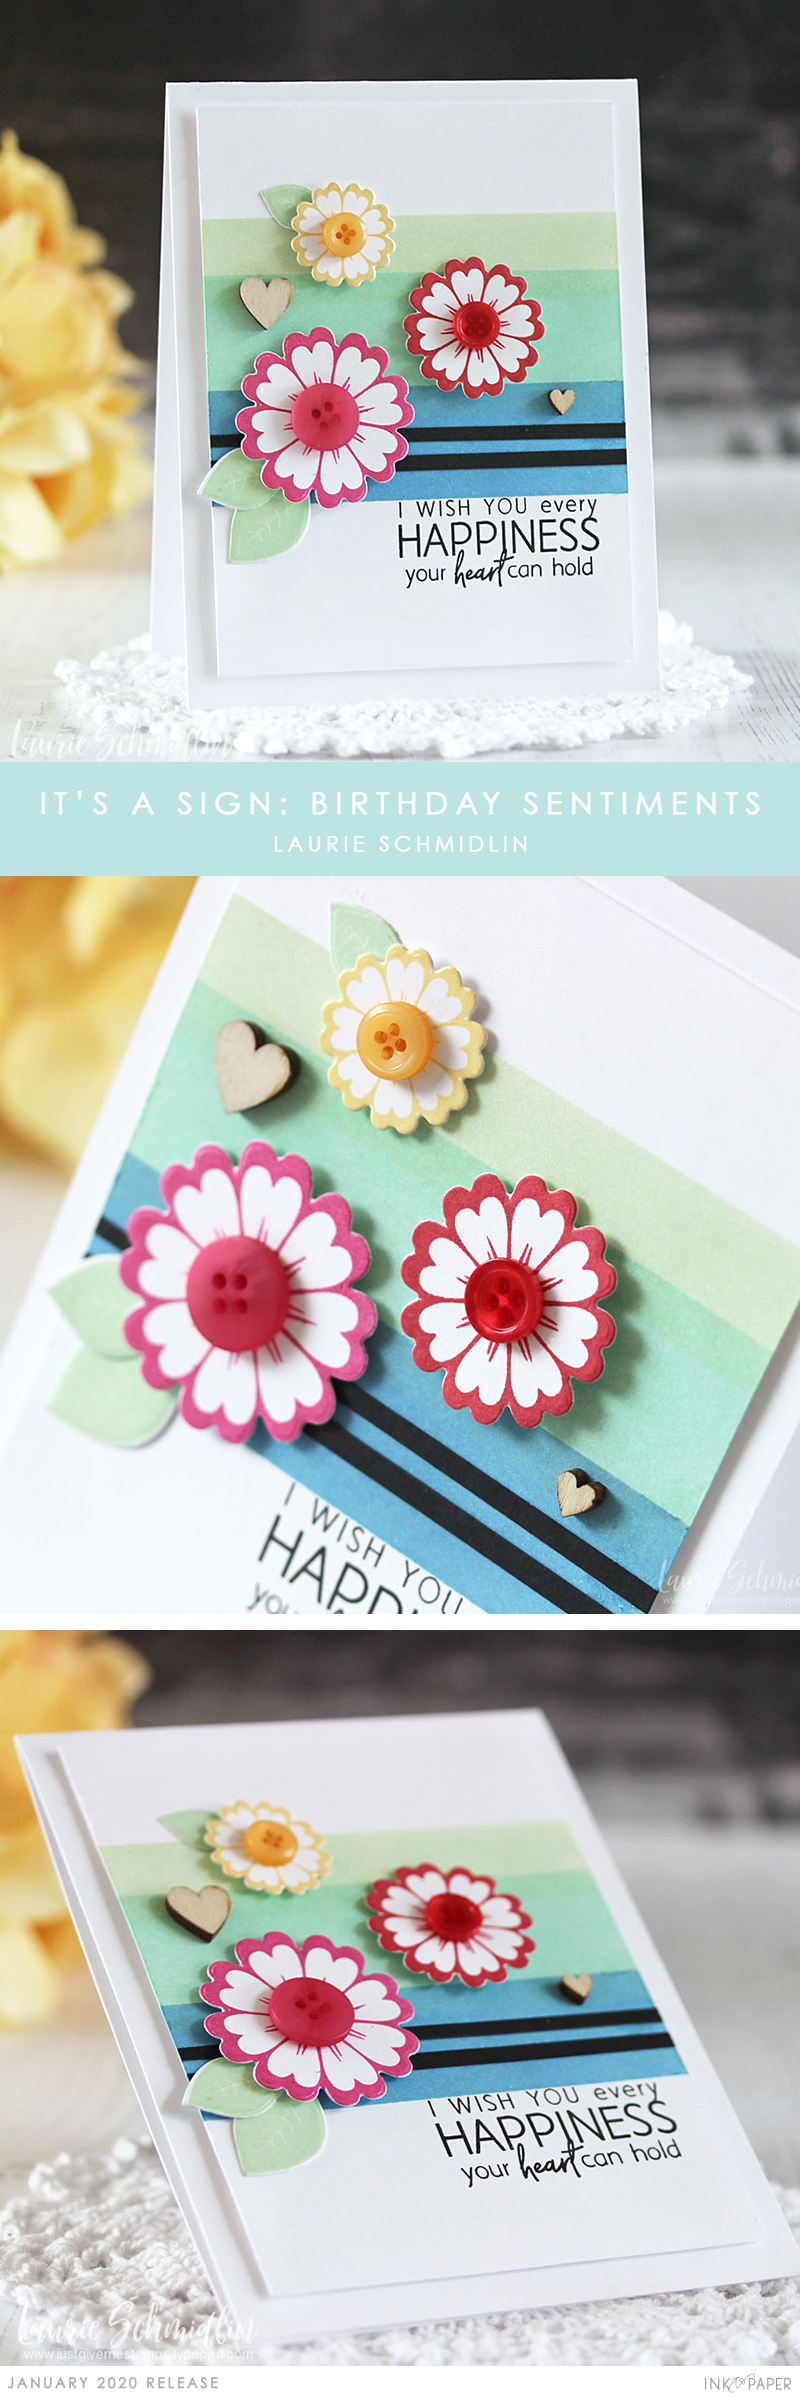 Daisys Stamps by the sea collection  Birthday Sentiments  26 Stamps